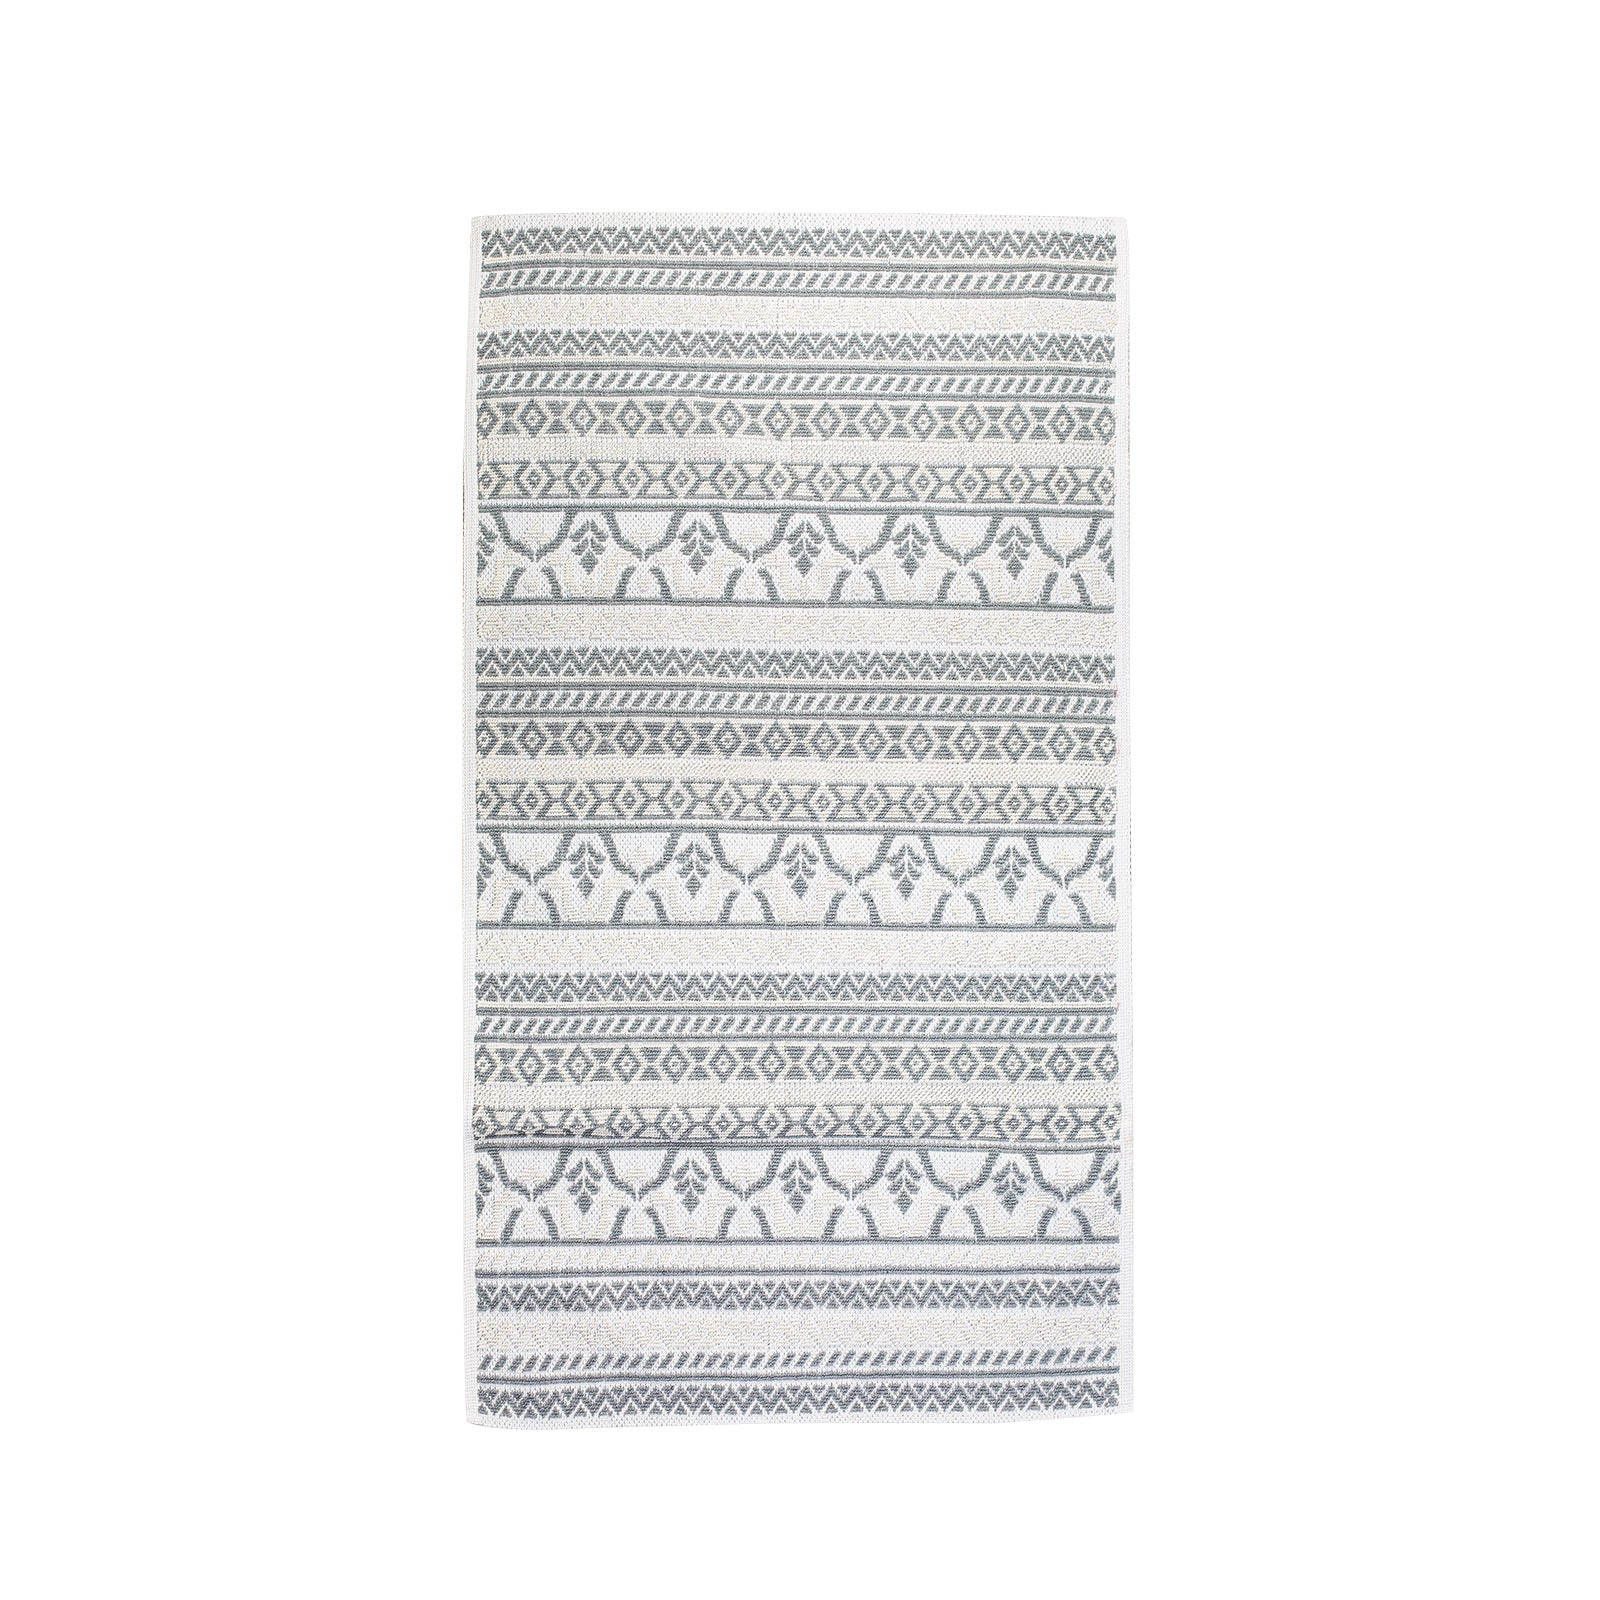 Karaca Home Morocco 80x150 cm Ecru-Gray Kilim 201.17.01.0074 -  كاراجا هوم المغرب 80× 150 سم سجادة رمادية - Shop Online Furniture and Home Decor Store in Dubai, UAE at ebarza